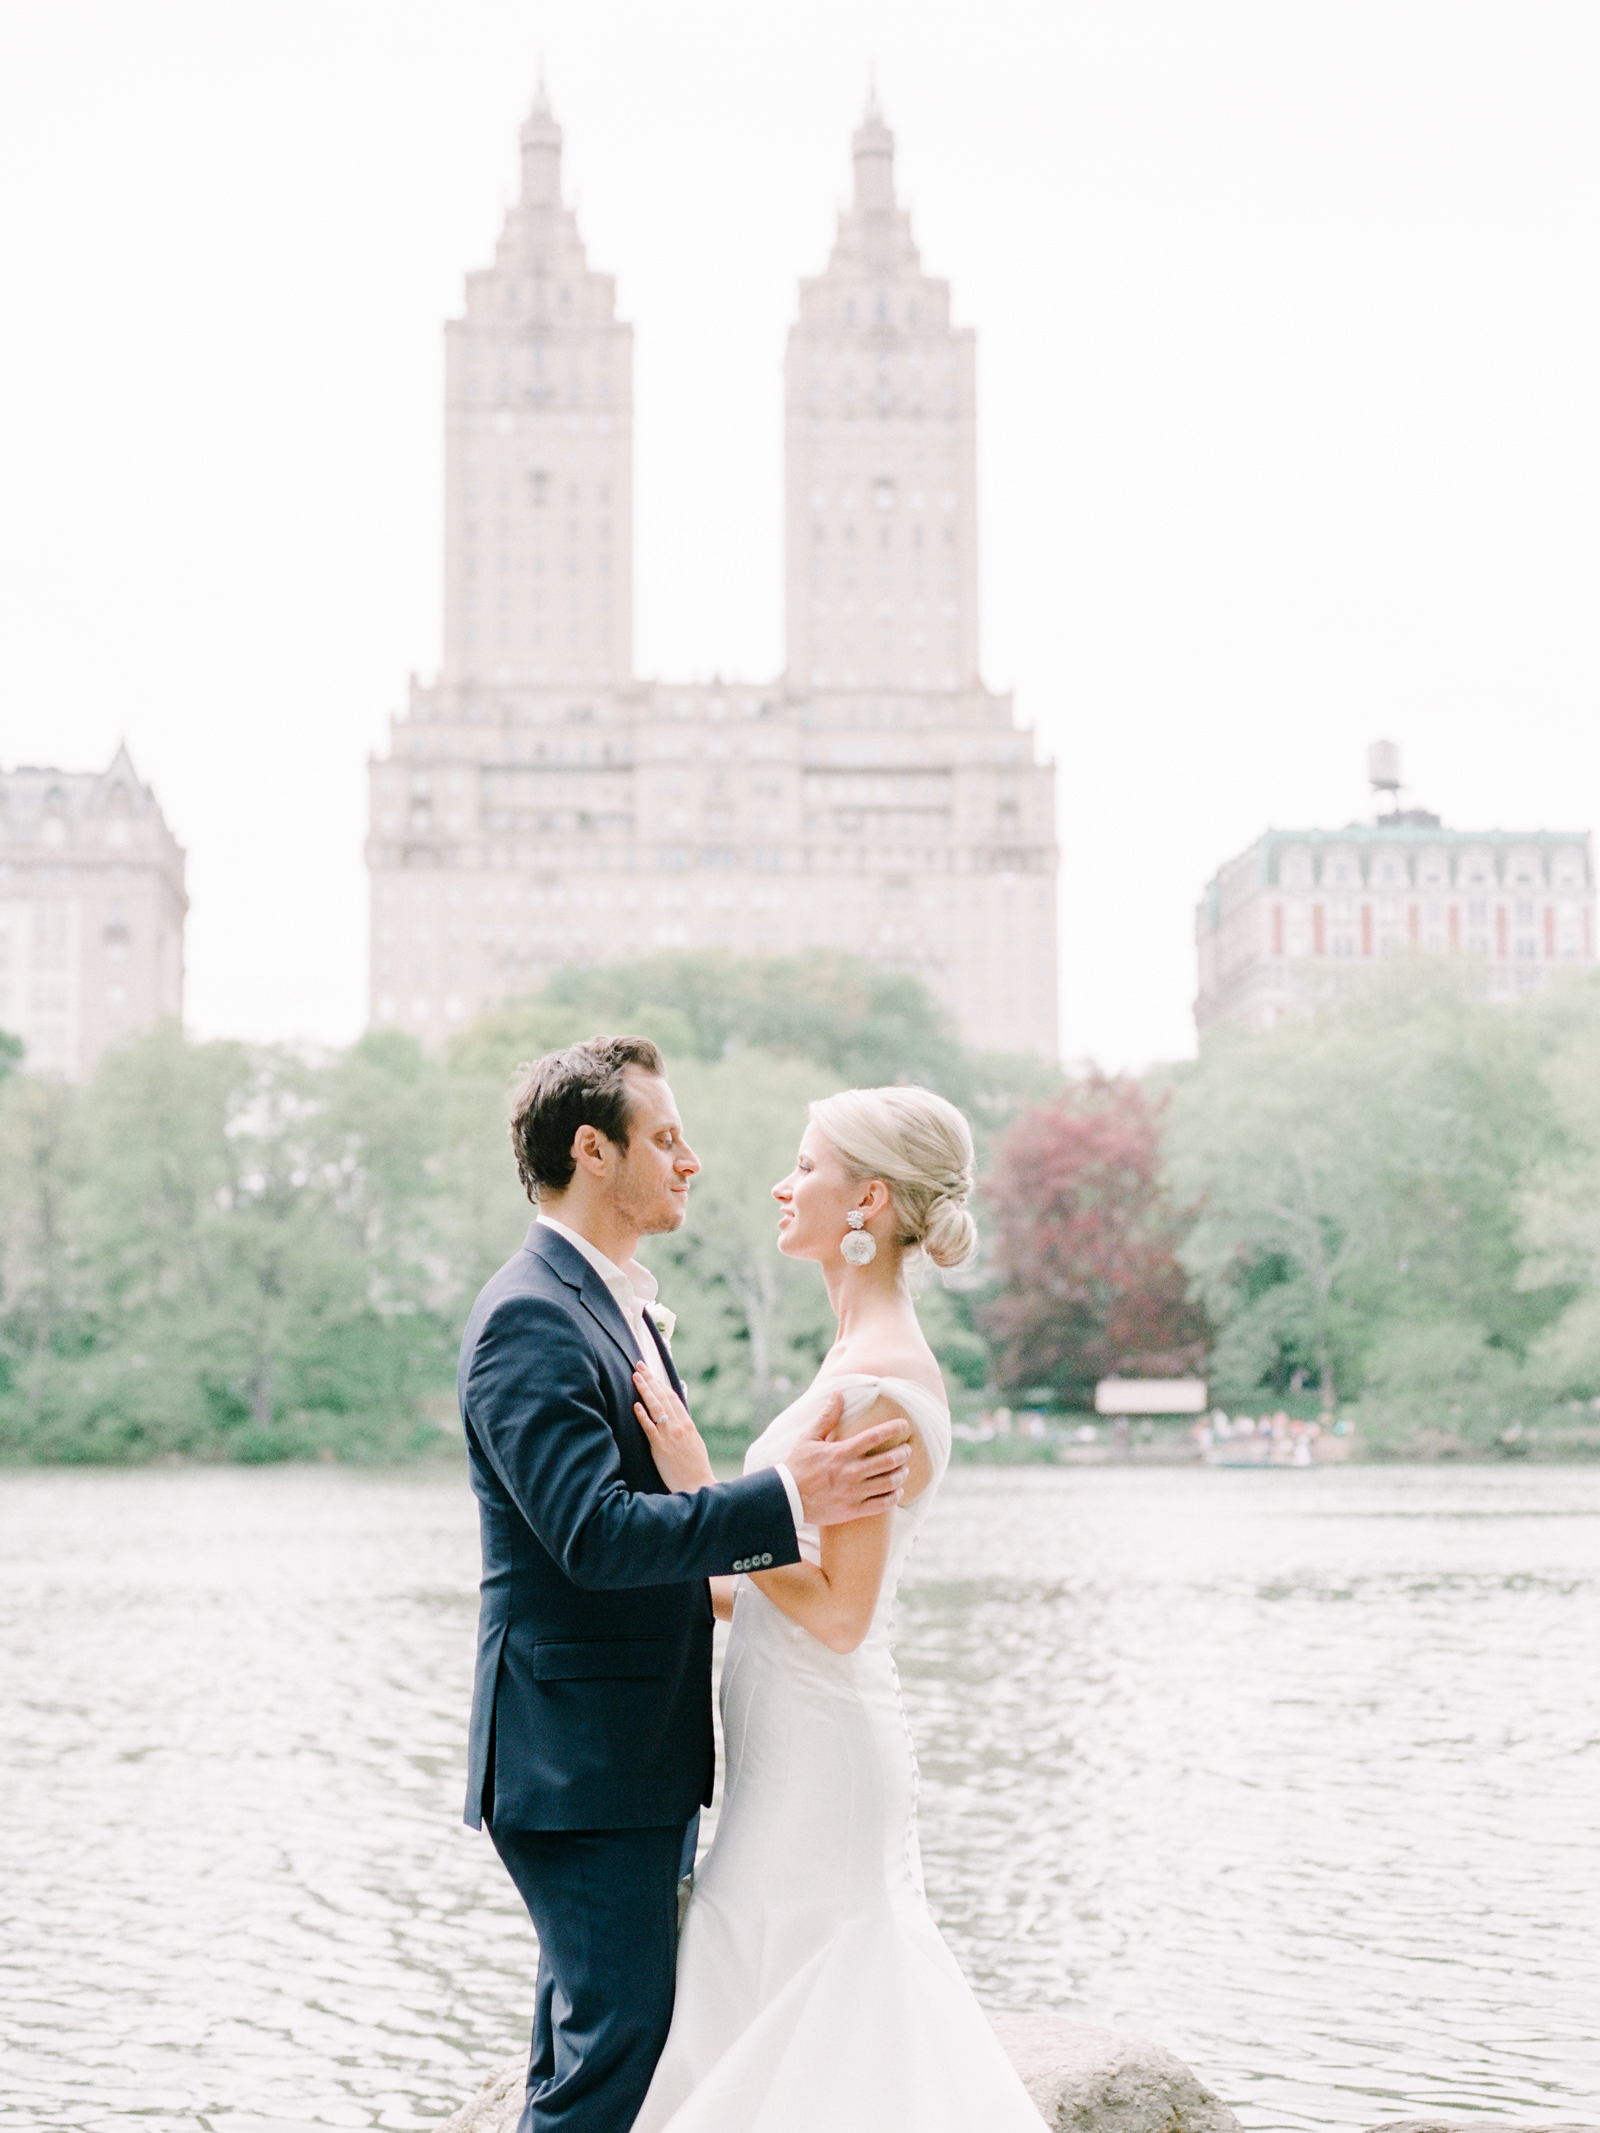 Intimate-NYC_wedding_ by Tanya Isaeva-107.jpg